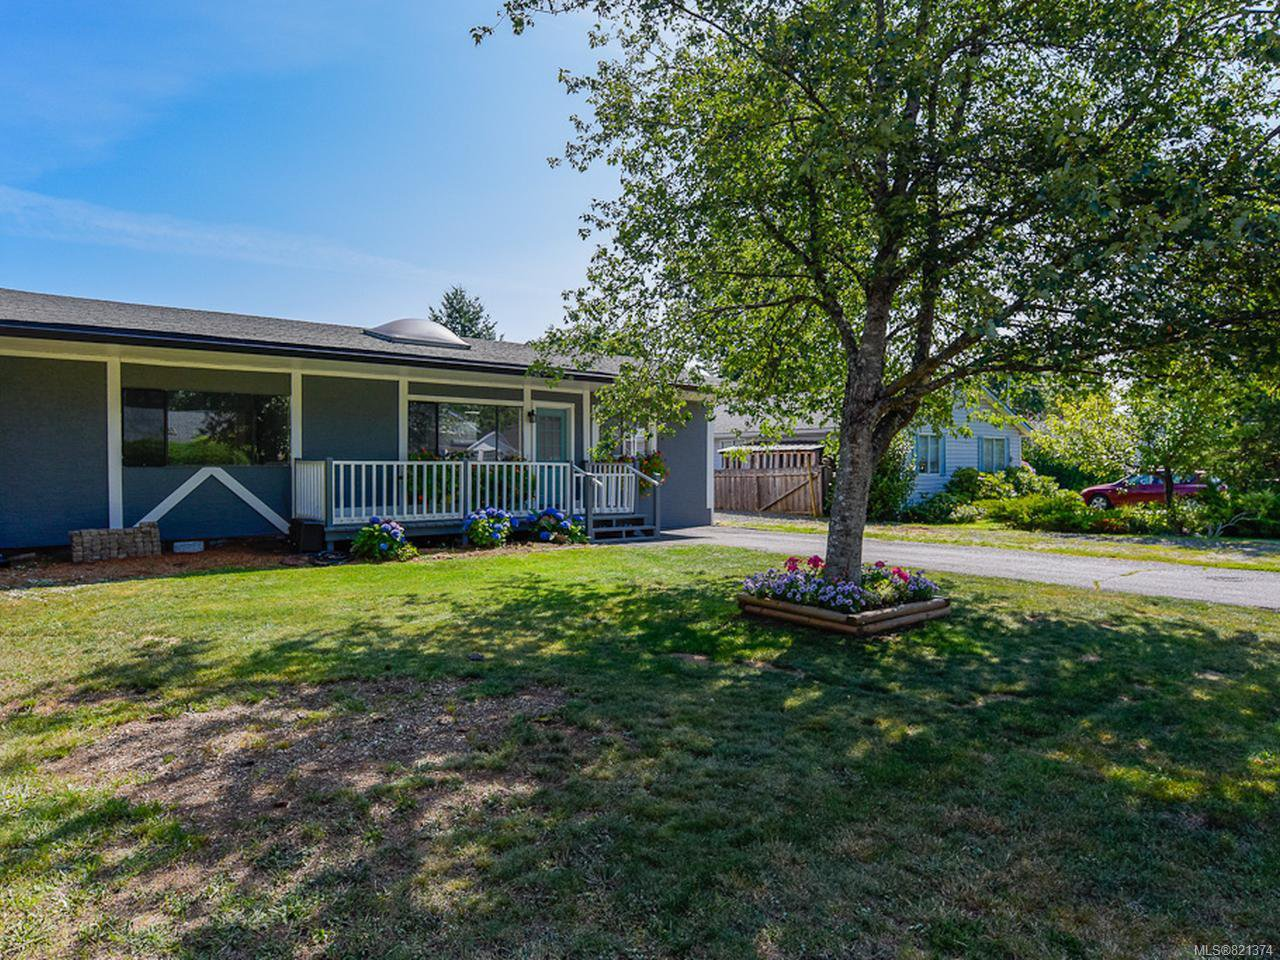 Main Photo: 1784 URQUHART Avenue in COURTENAY: CV Courtenay City House for sale (Comox Valley)  : MLS®# 821374